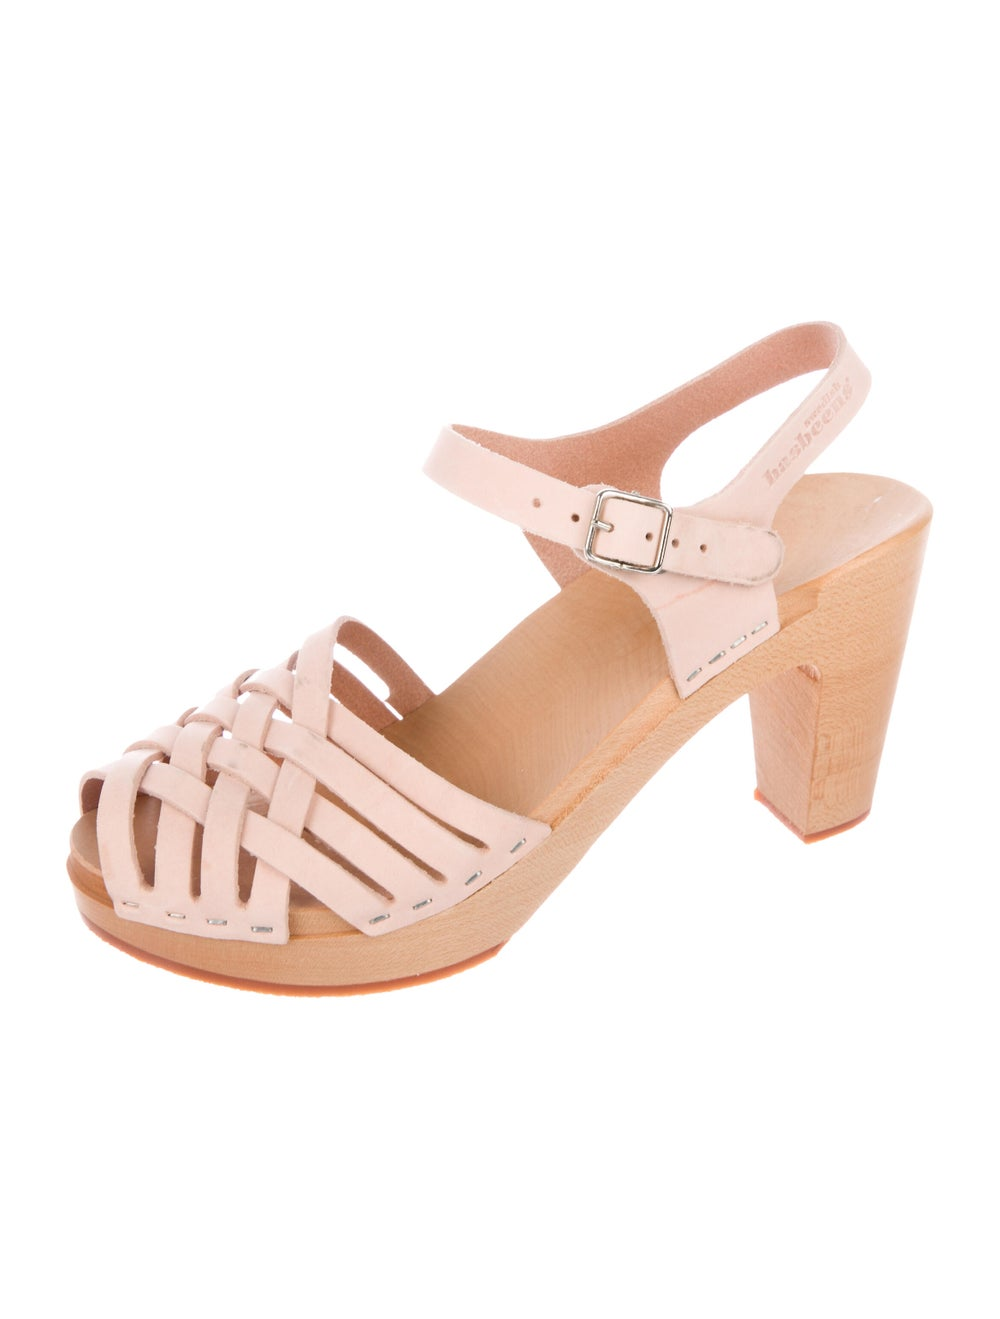 Swedish Hasbeens Leather Sandals Pink - image 2